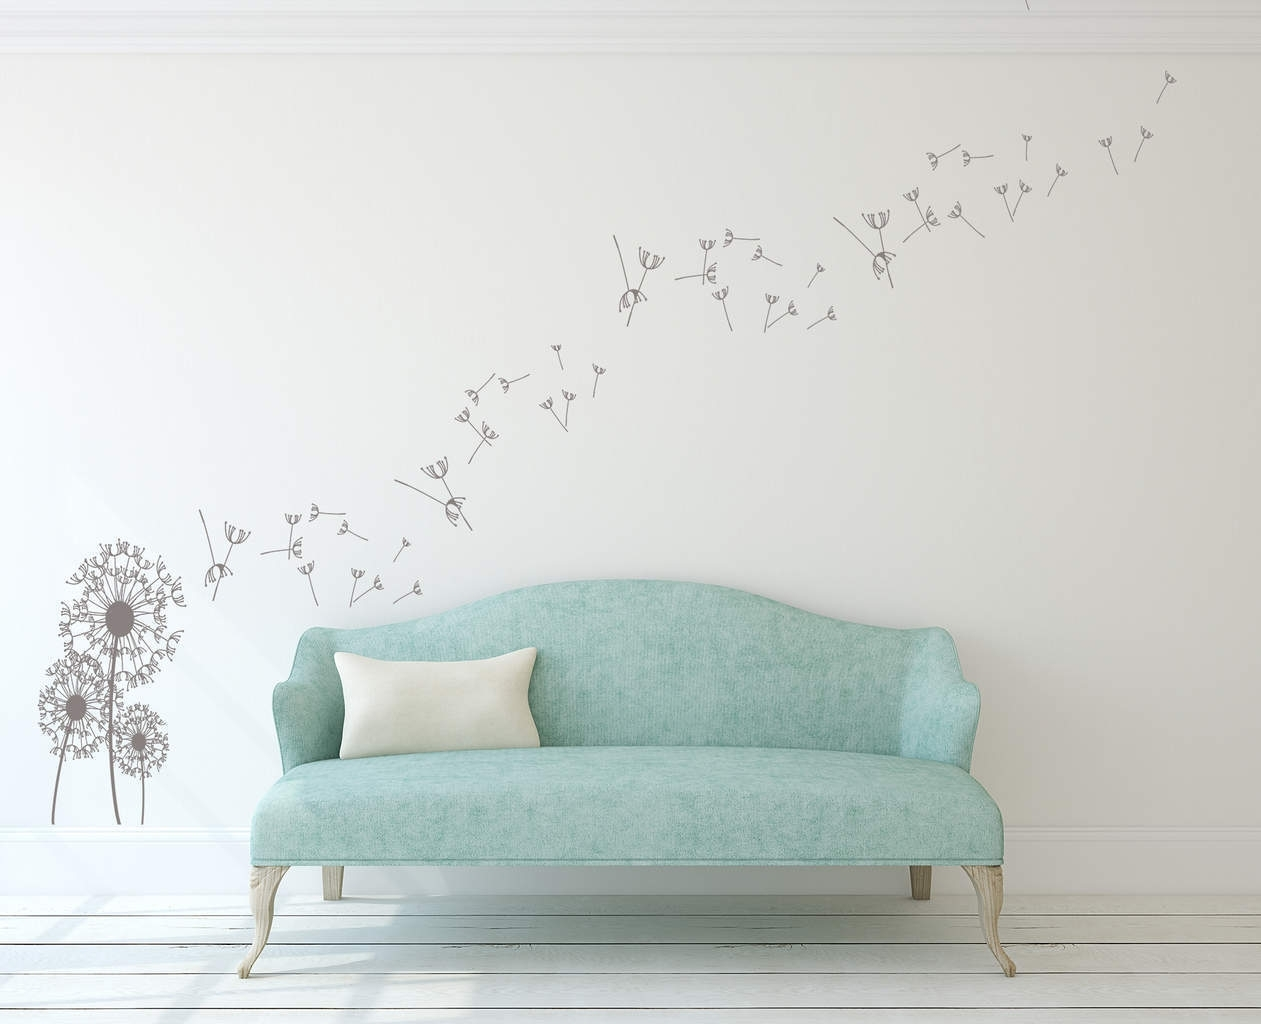 Dandelion Wall Art Decal | Dandelion Wall Decal Sticker Intended For Latest Dandelion Wall Art (View 7 of 20)